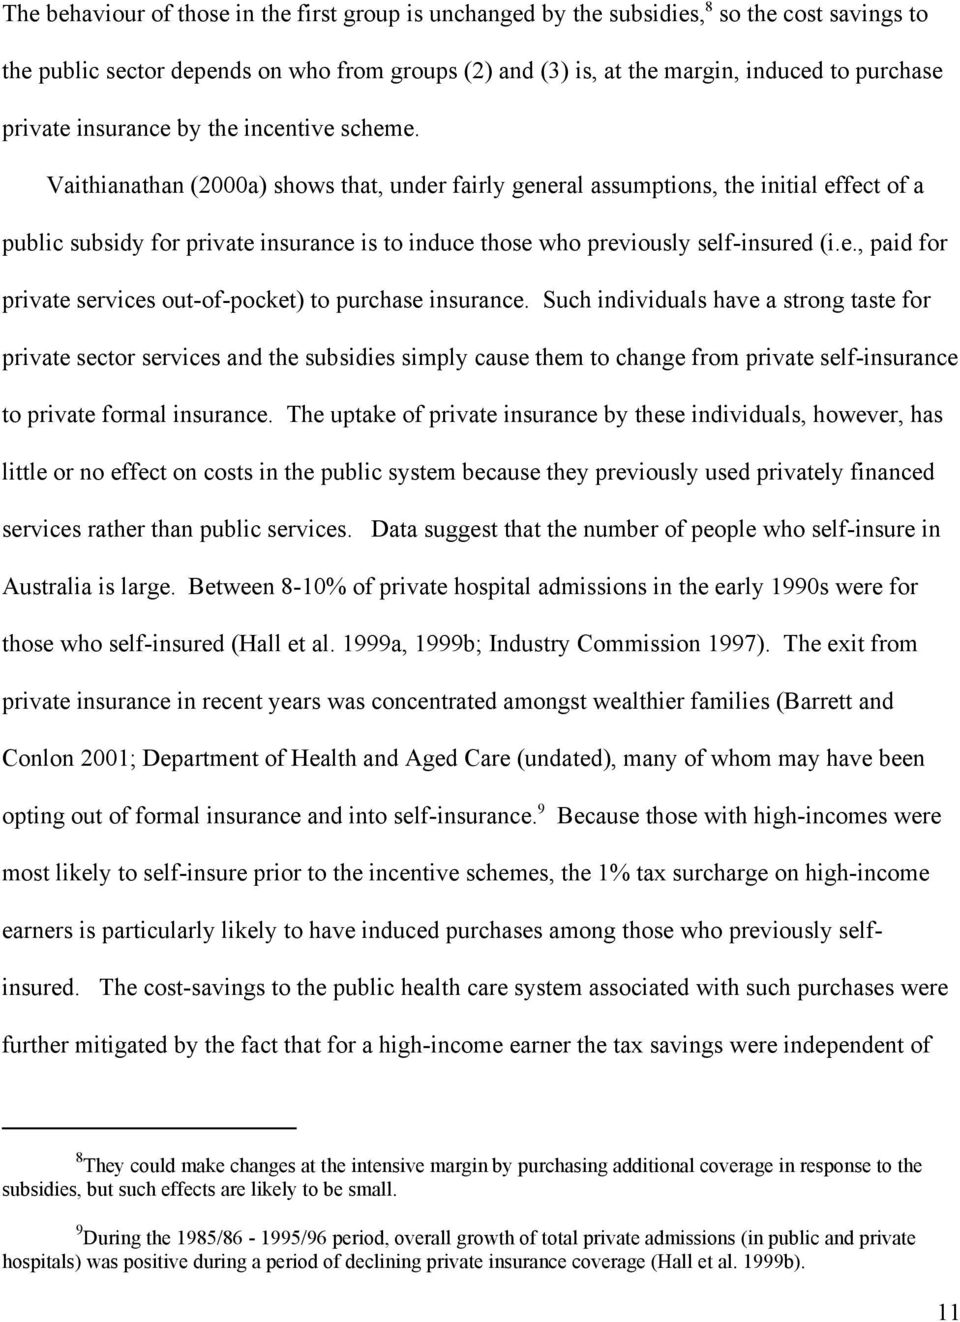 Vaithianathan (2000a) shows that, under fairly general assumptions, the initial effect of a public subsidy for private insurance is to induce those who previously self-insured (i.e., paid for private services out-of-pocket) to purchase insurance.